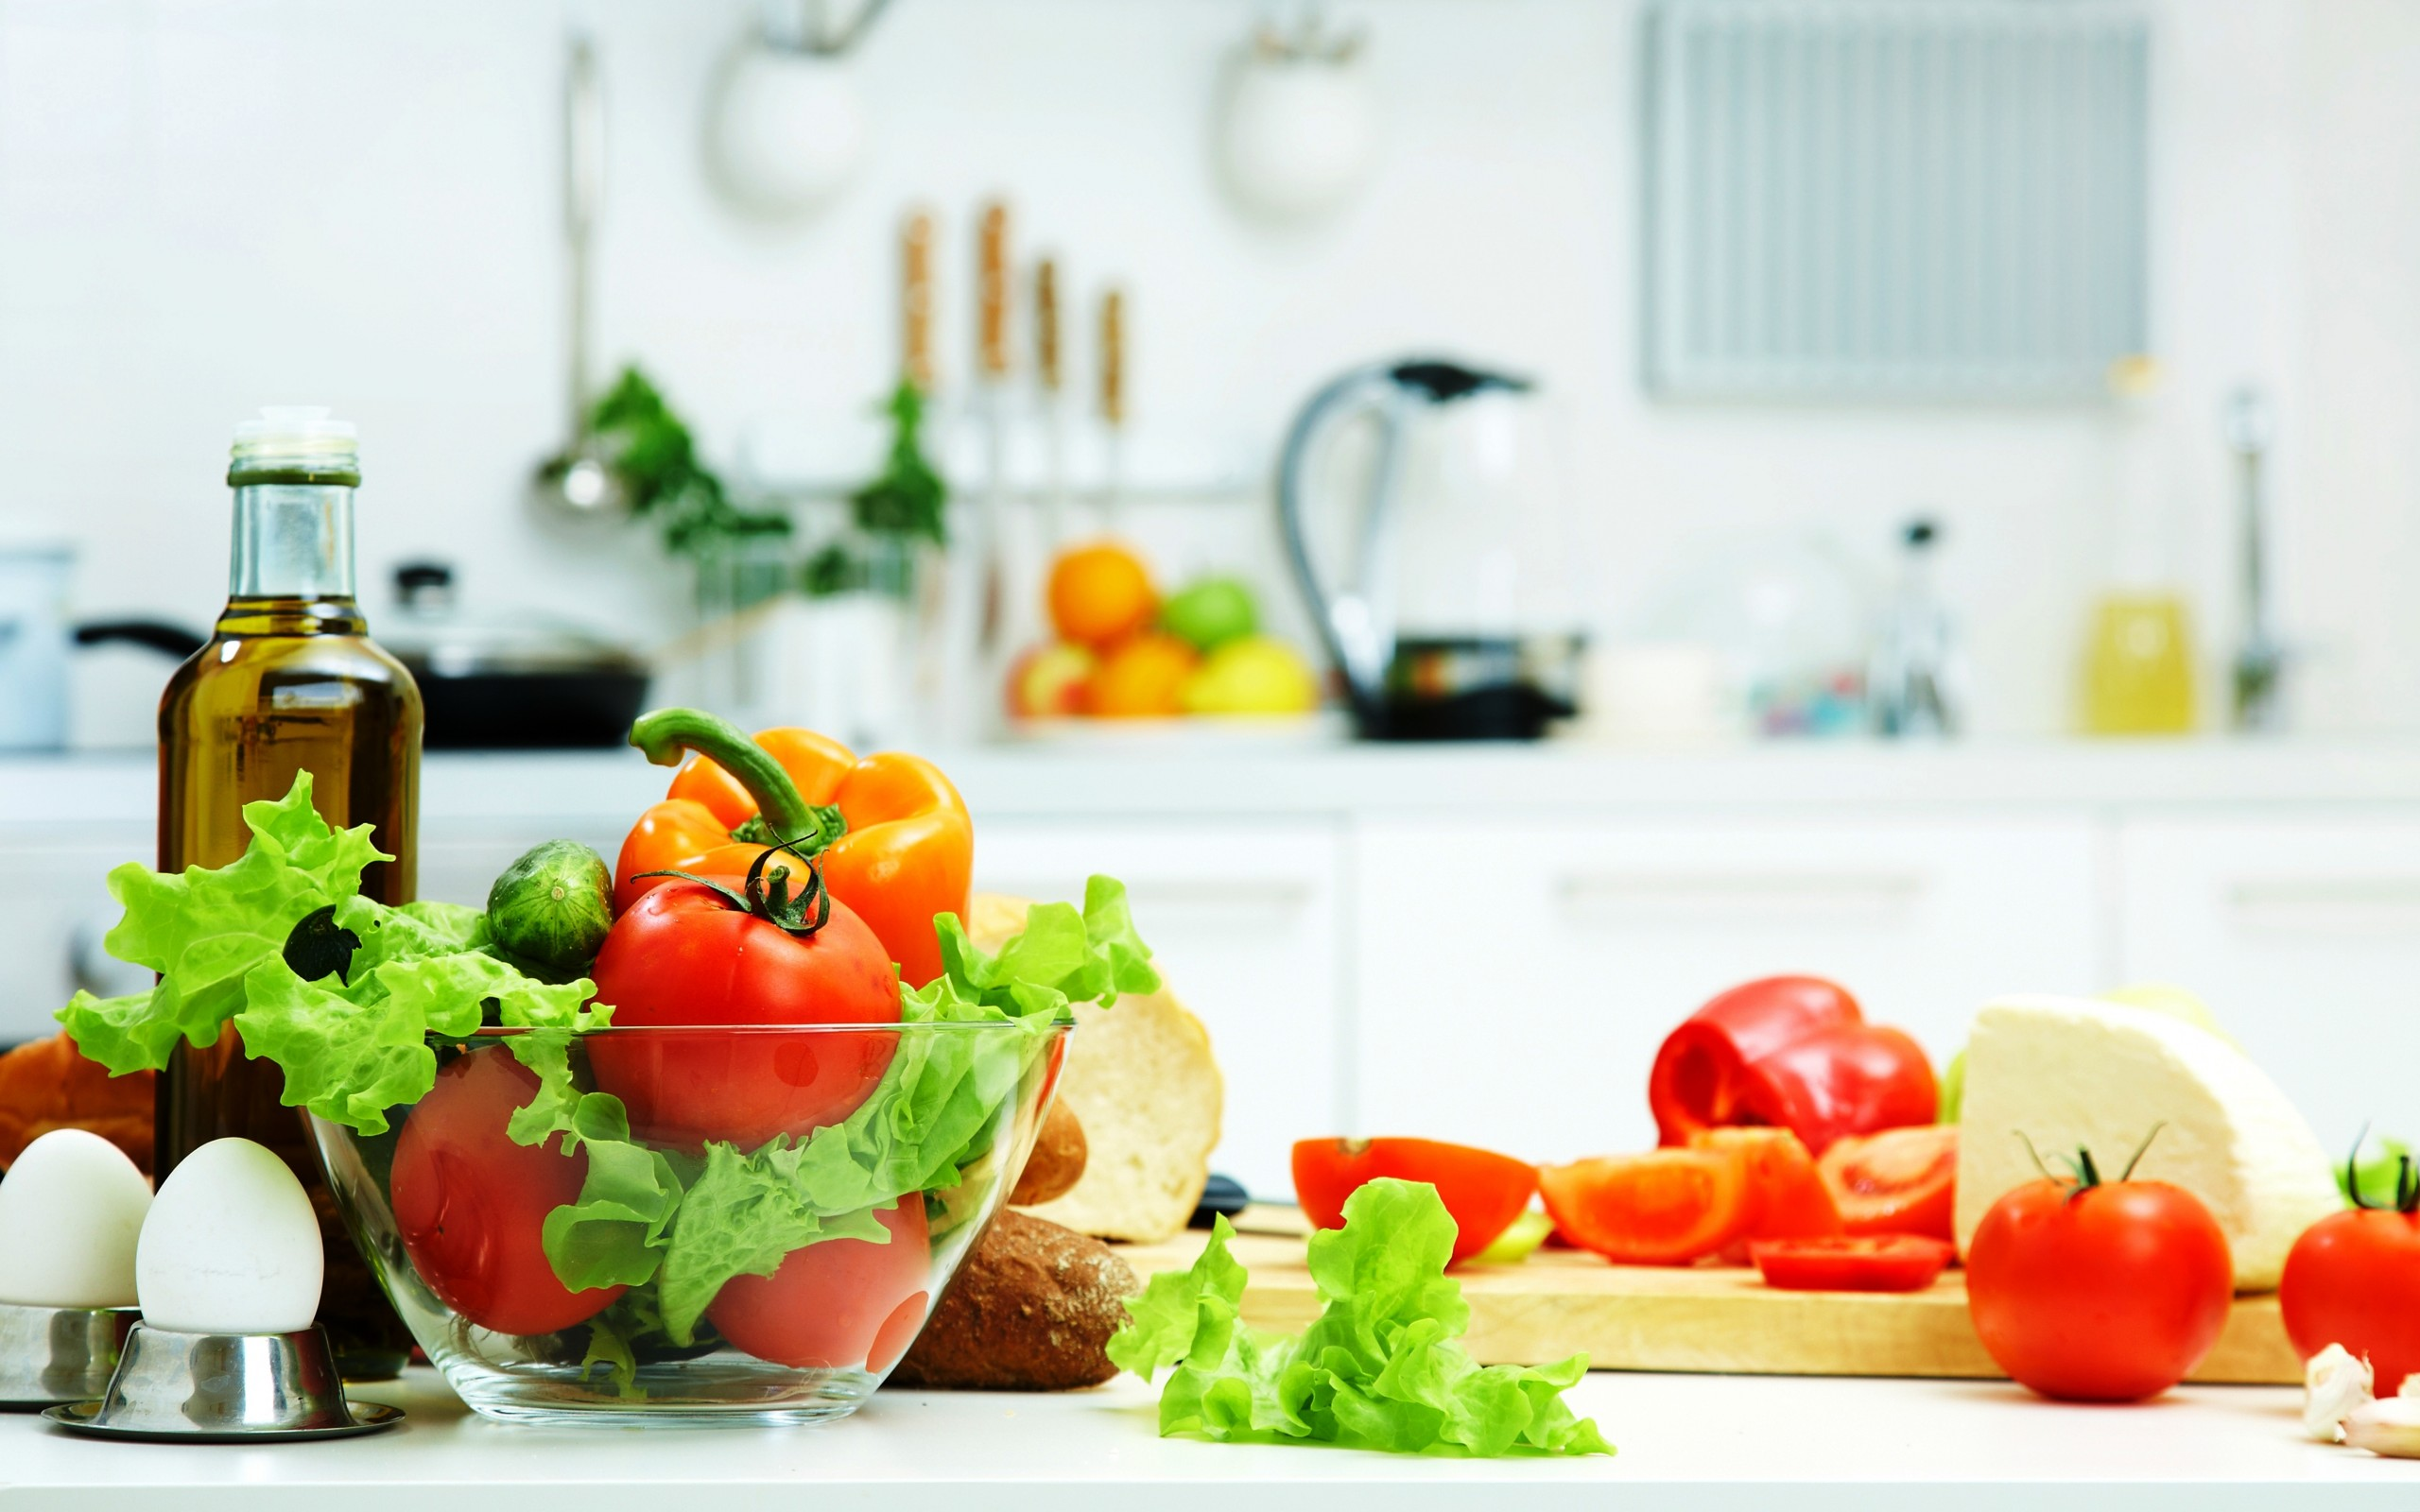 tomatoes before cucumbers vegetables oil leaves cheese bread eggs food kitchen wallpaper 2560x1600 56229 wallpaperup - Food Kitchen